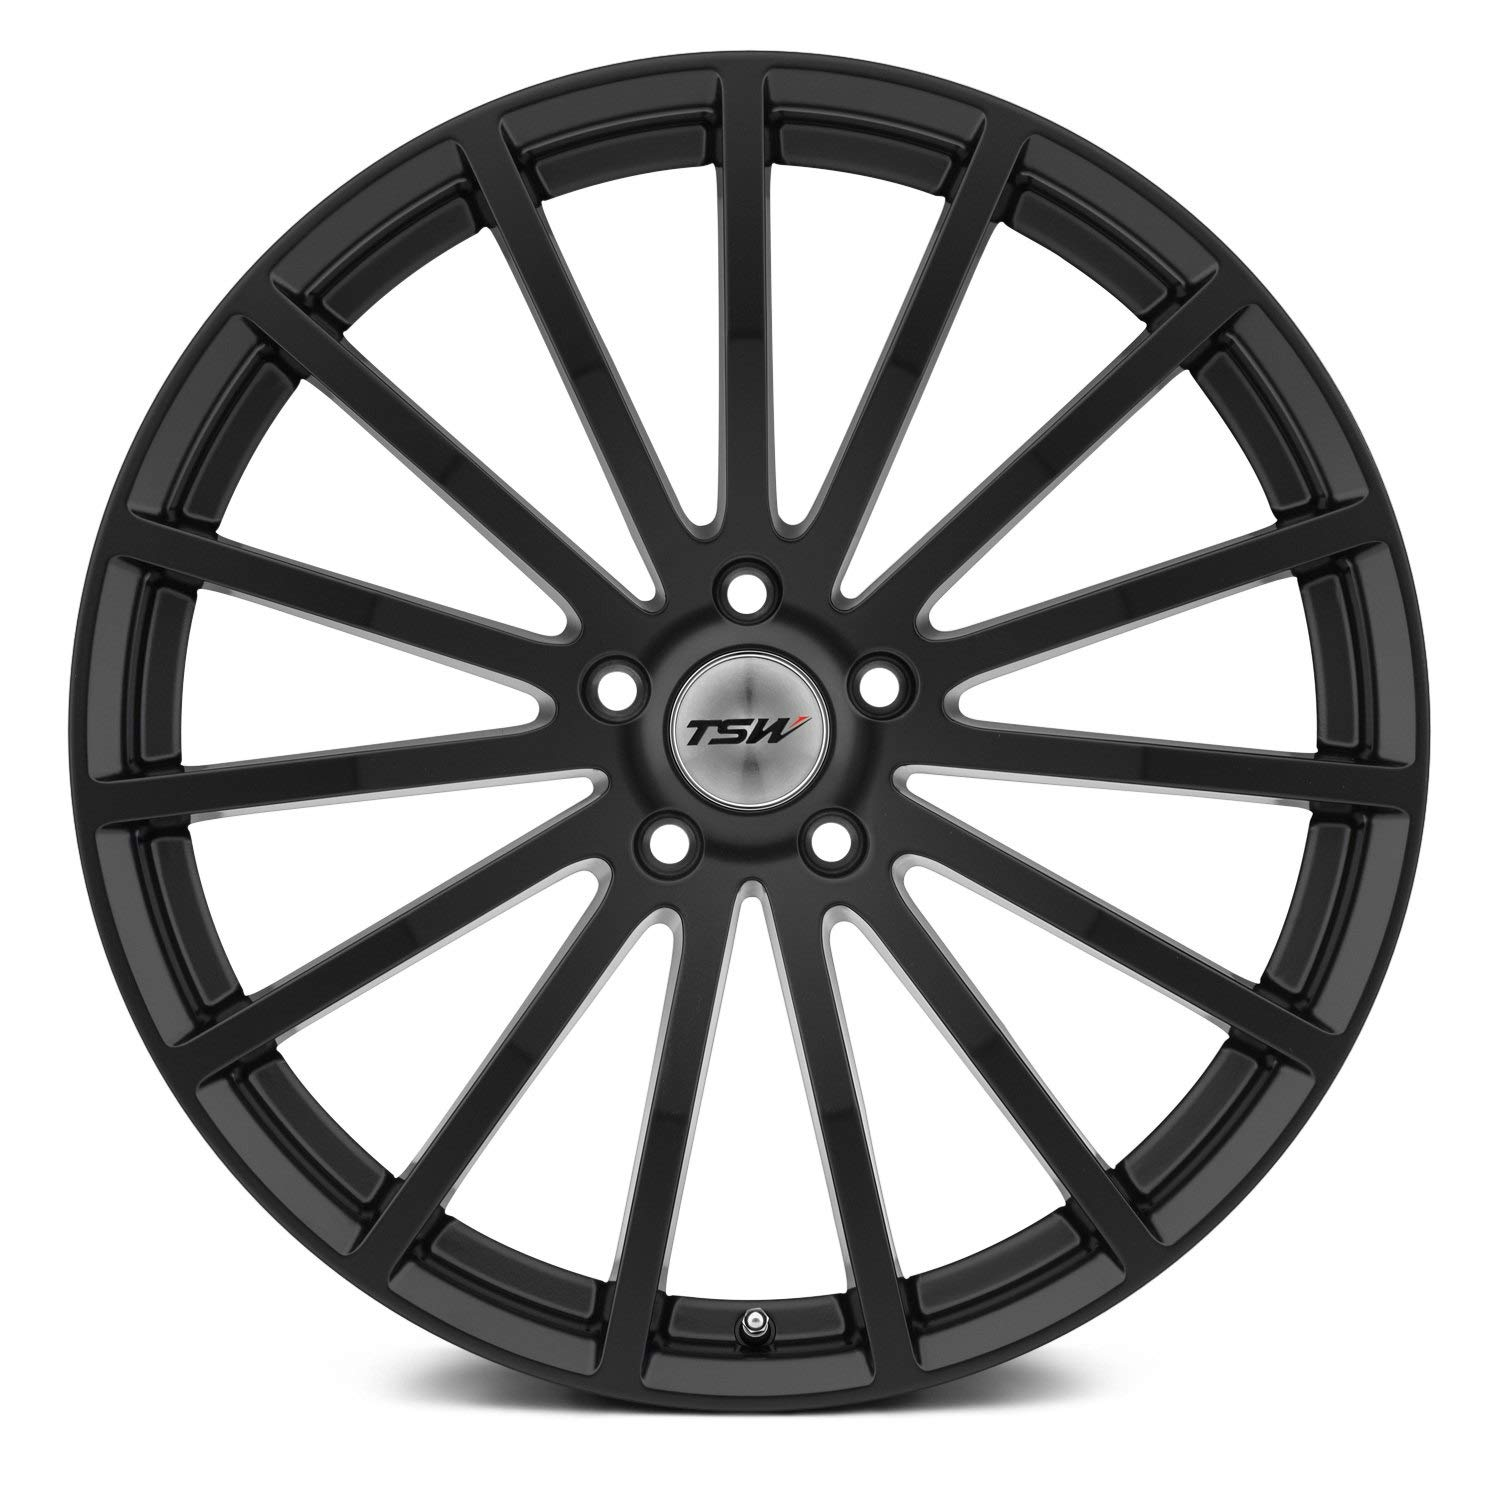 TSW 17 Inch 17x8 wheels MALLORY Matte Black wheels rims